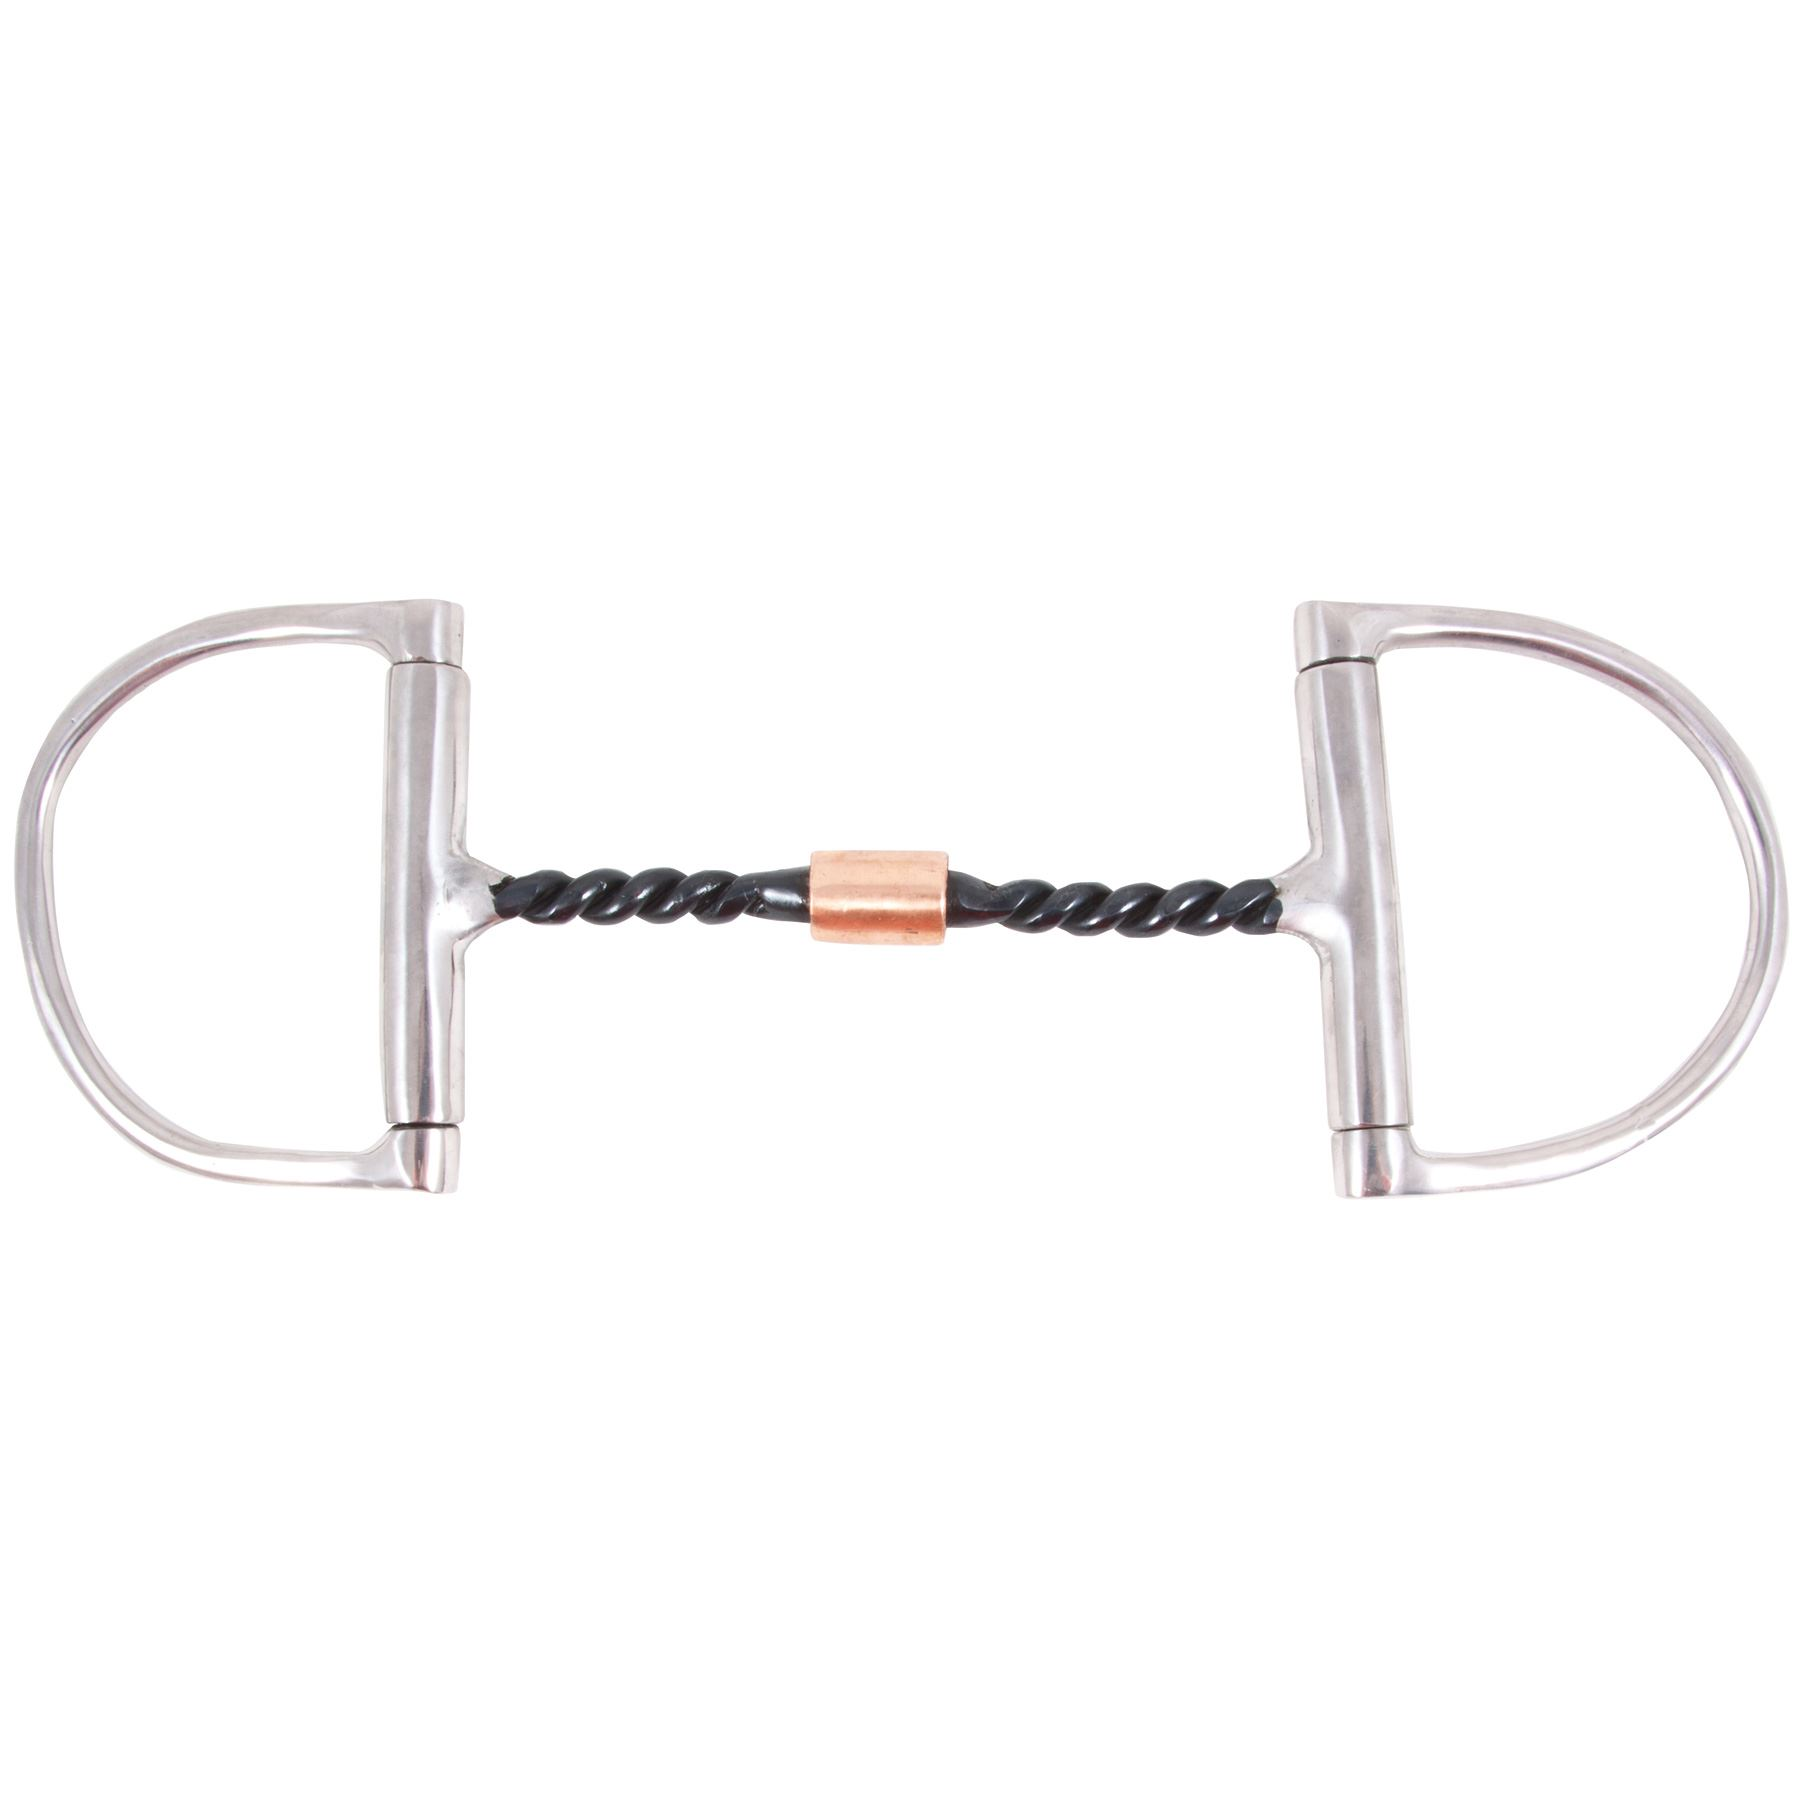 Fes Curved Twisted Wire D Ring W Roller Snaffle Bit In D